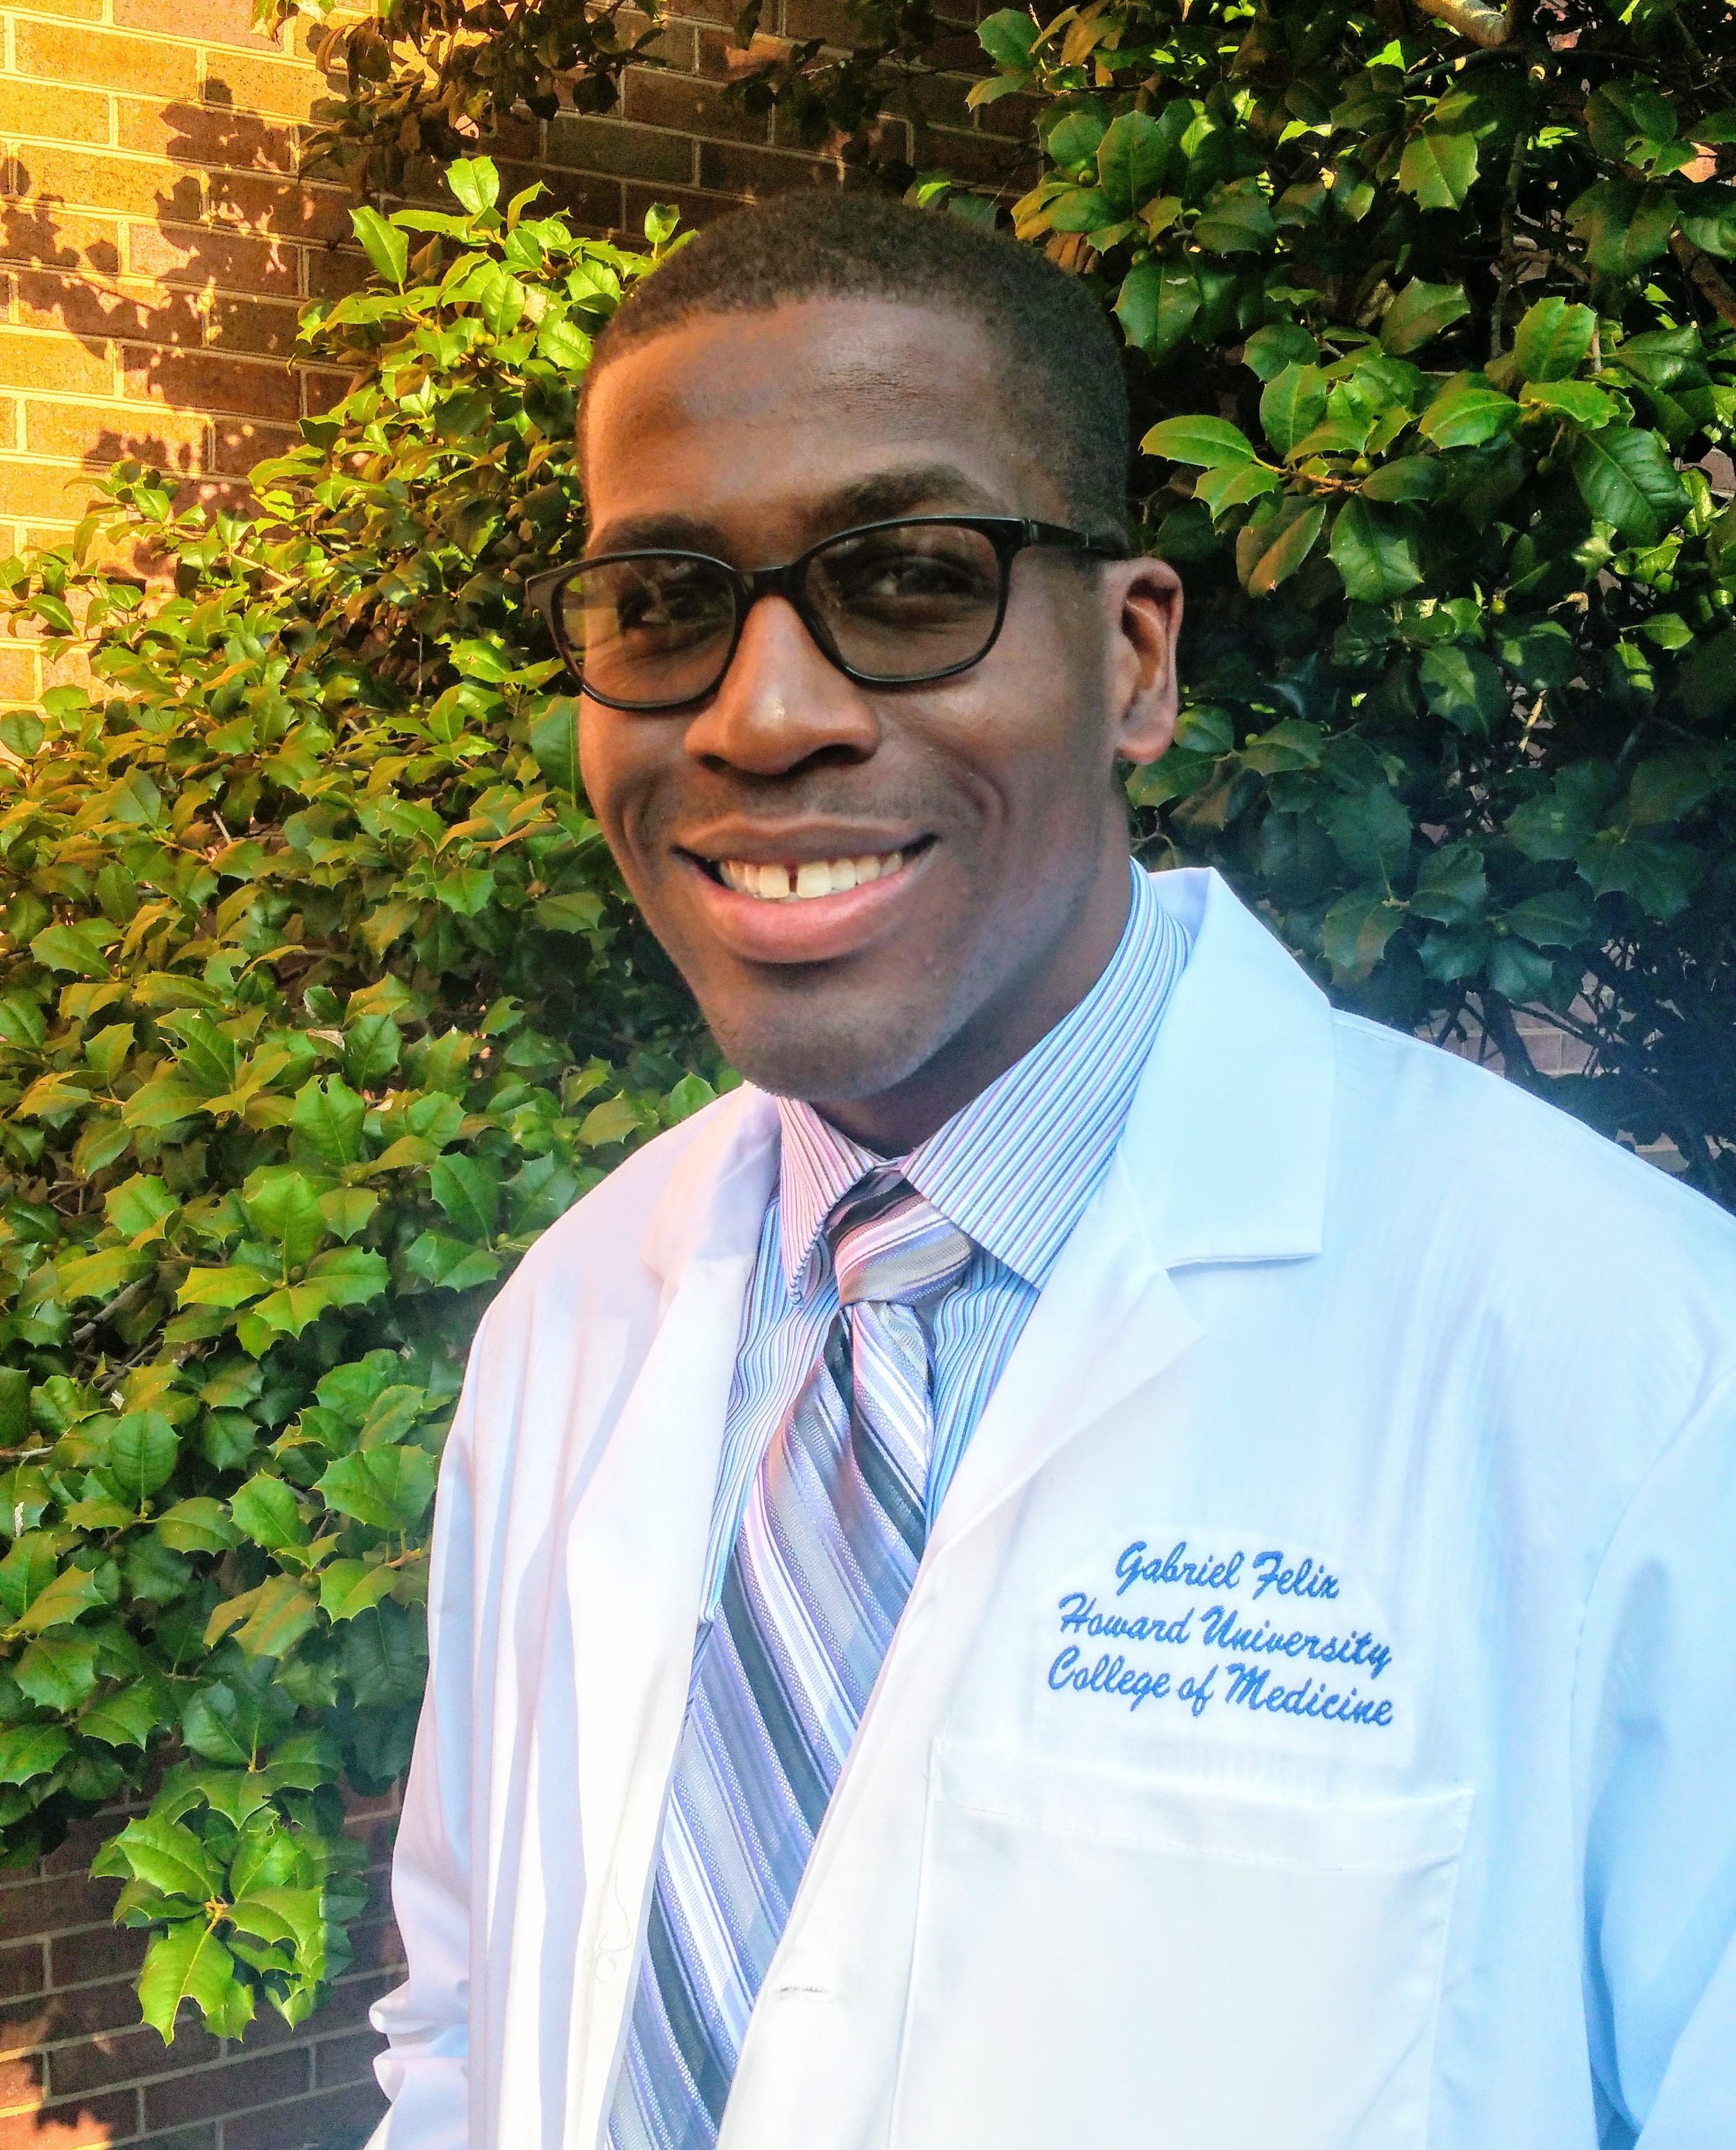 Gabriel Felix, MD Candidate and 55th National President of SNMA